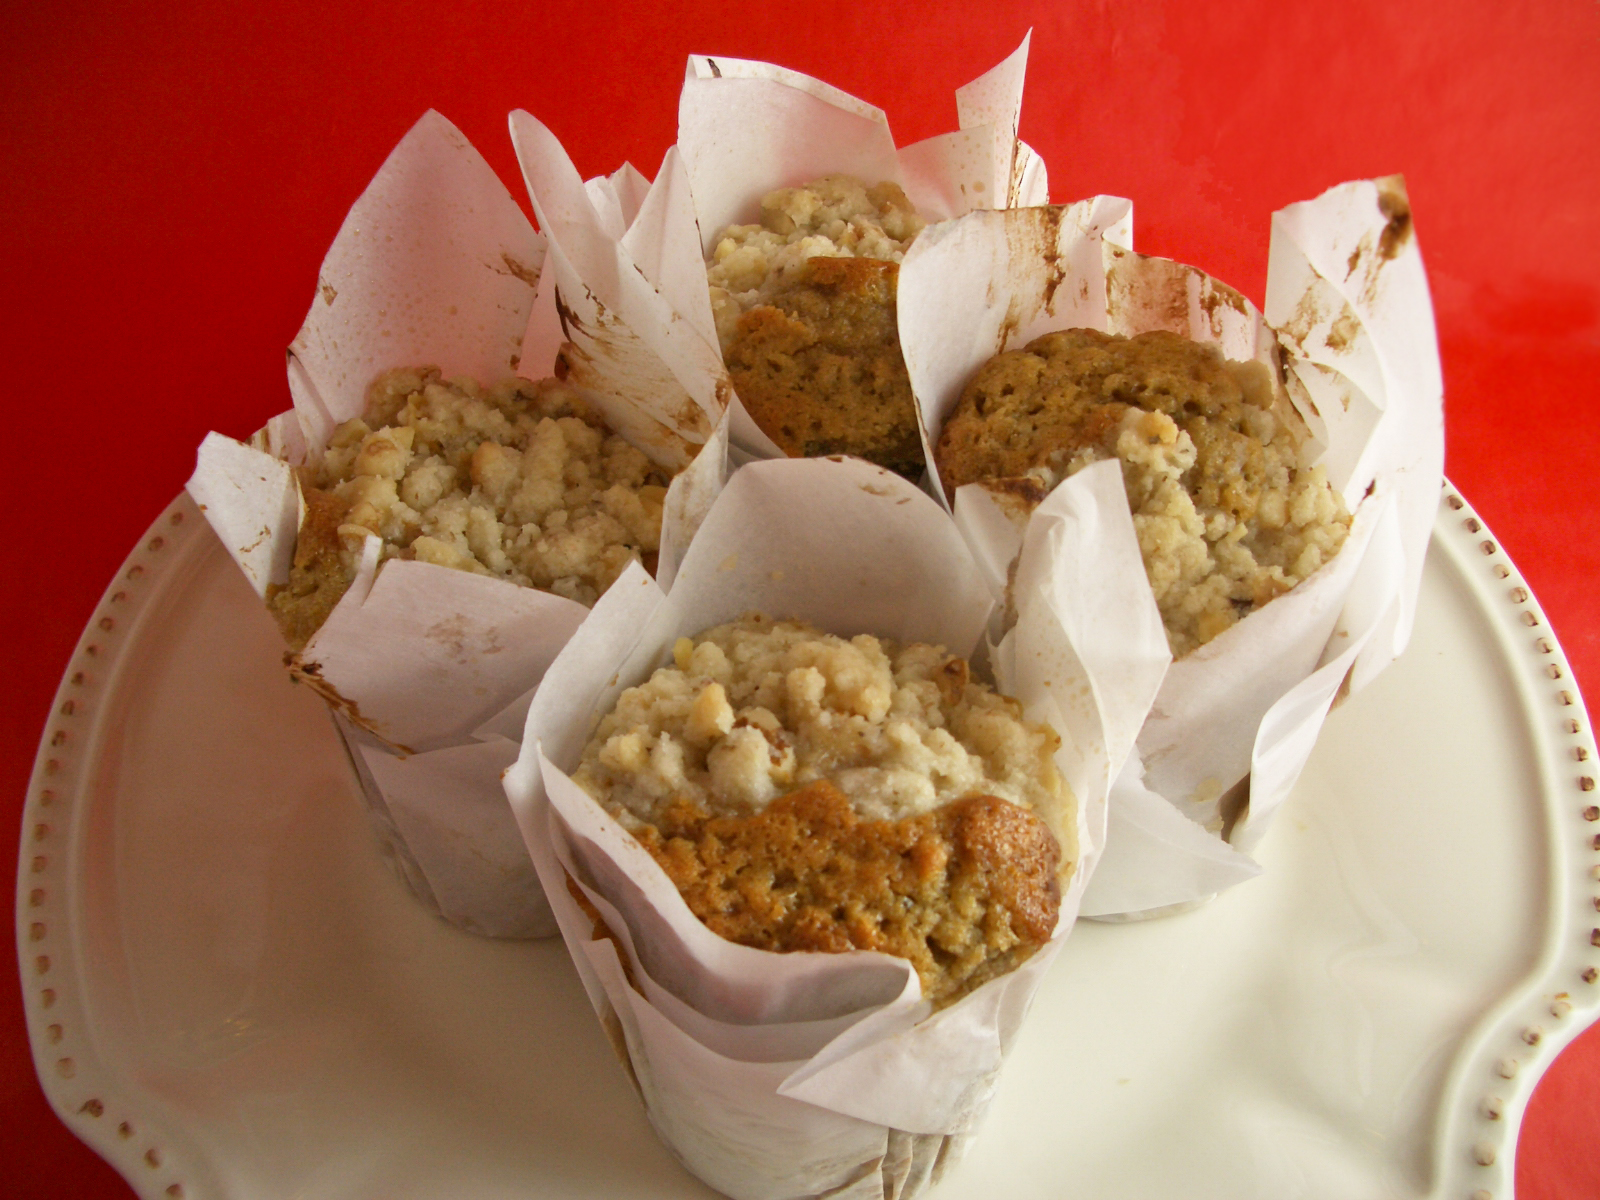 Goodies by Anna: Banana Muffins with Walnut Streusel Topping